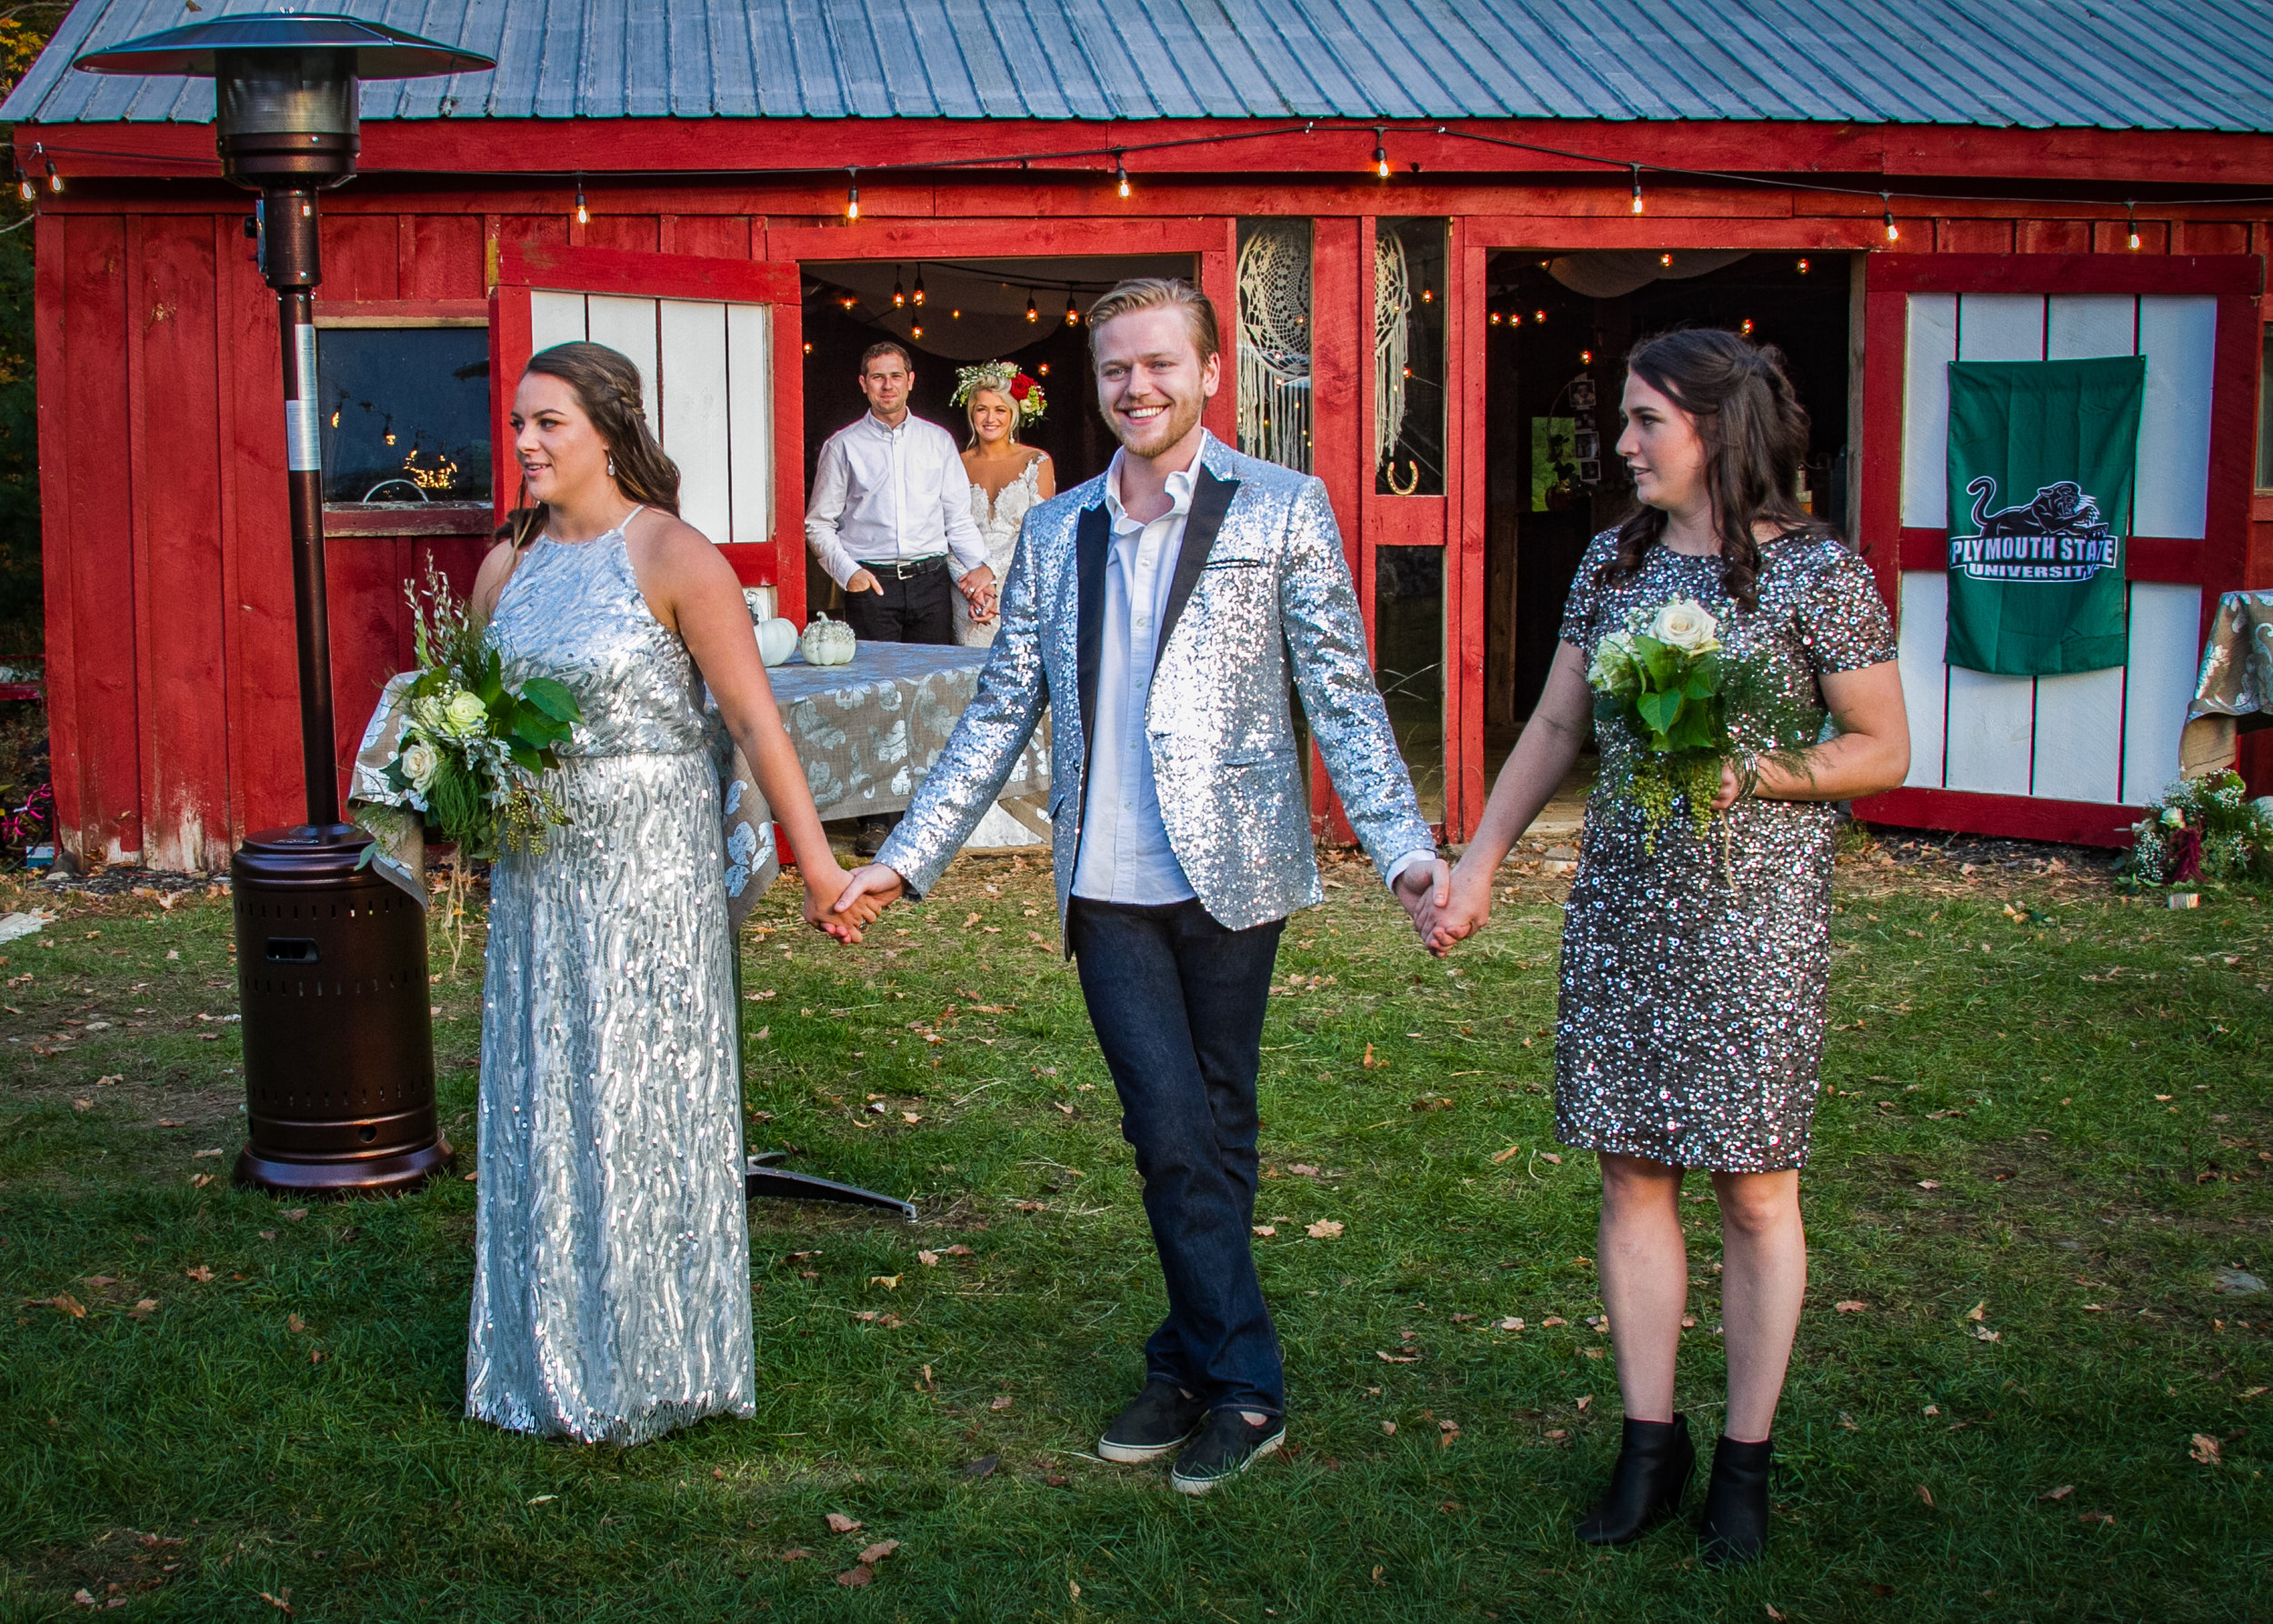 This lovely occasion is being held in front of our barn.  The fun, sparkly dresses and coat are a wise choice for the evening's attire.  To help keep guests warm is this tower heater to the left.  Note how cute Lexee and Brandon are in the back.